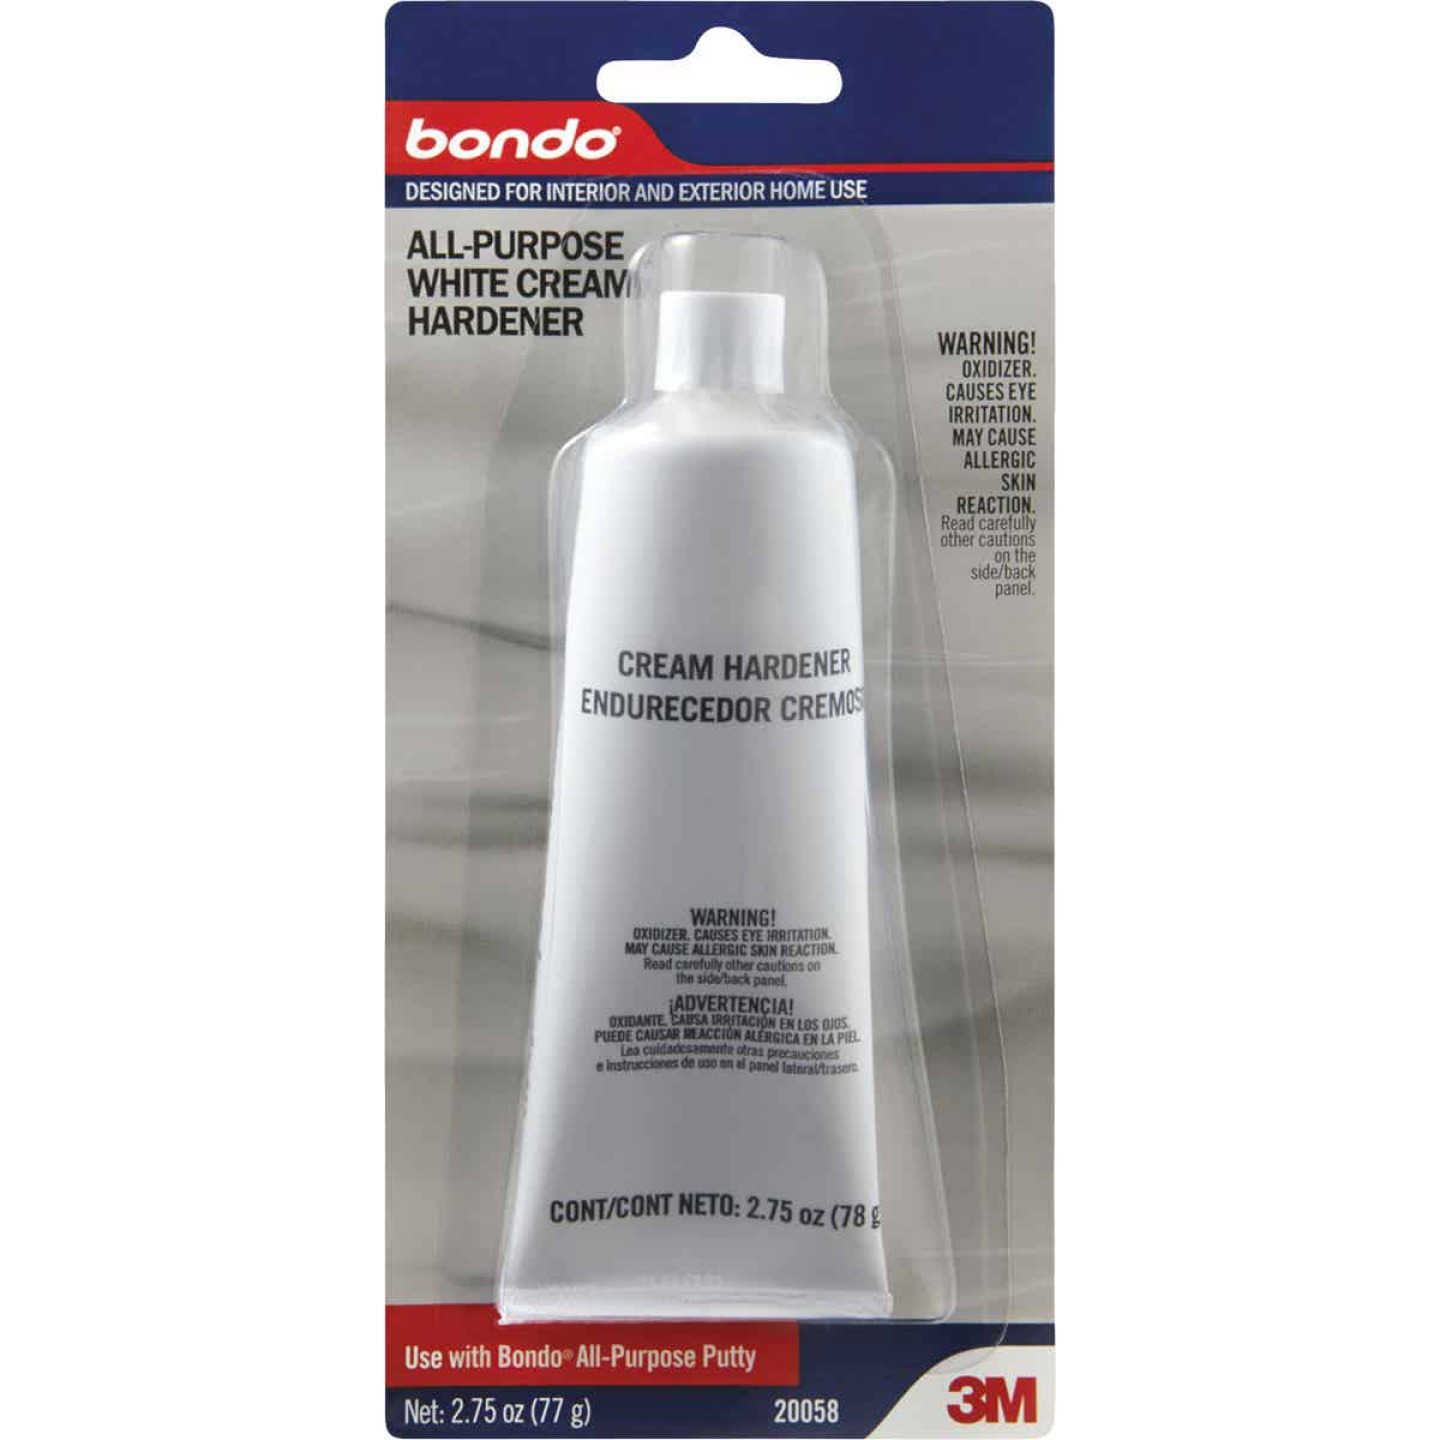 3M Bondo 2.75 Oz. All-Purpose White Cream Body Filler Hardener Image 1